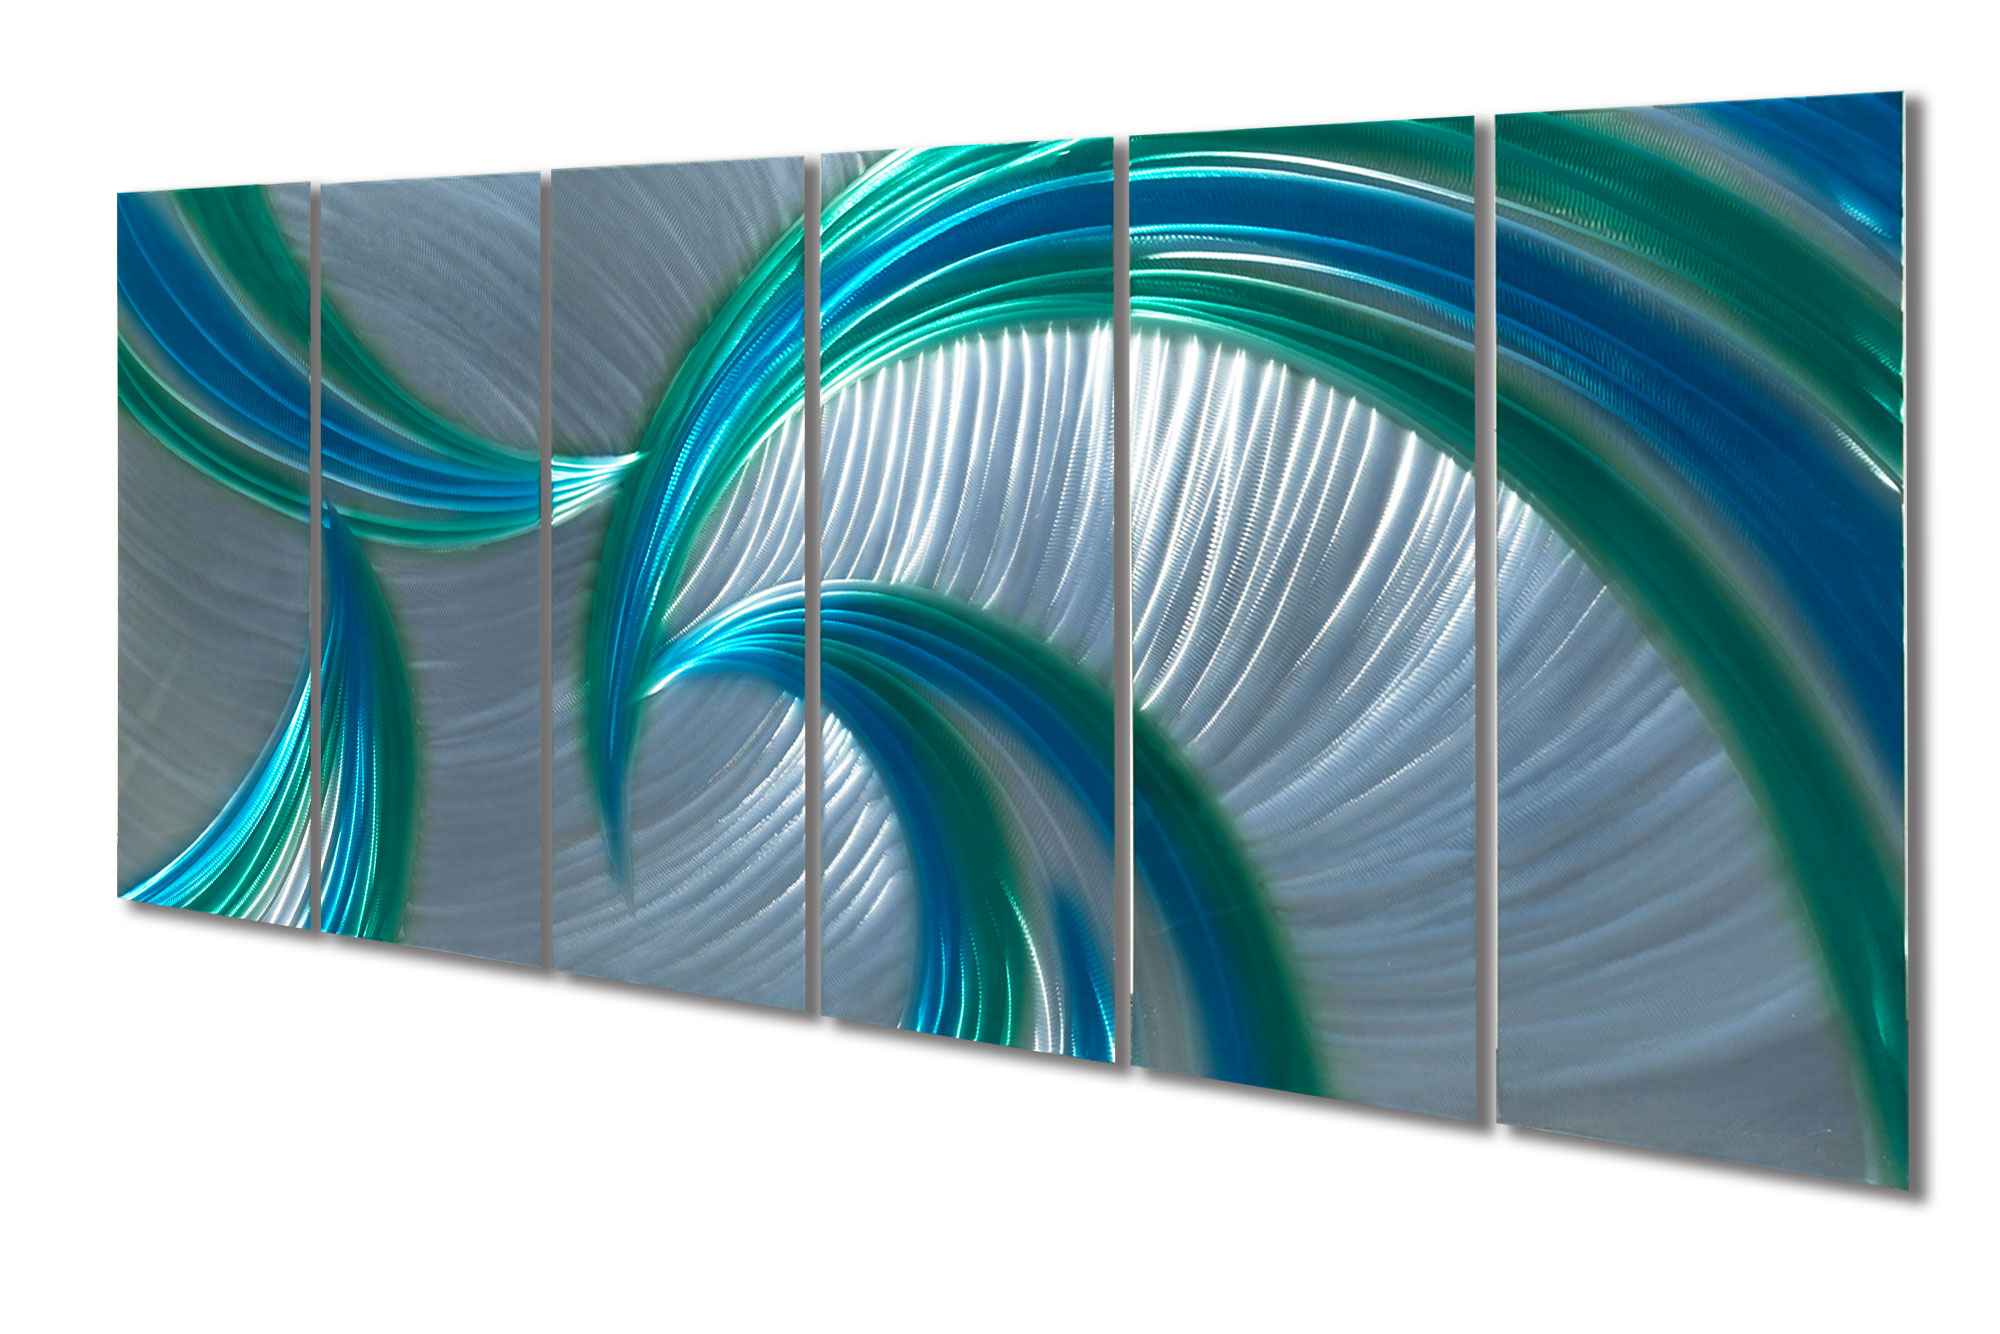 Blue Metal Wall Art Fascinating Tempest Blue Green 48X125  Metal Wall Art Abstract Sculpture Review